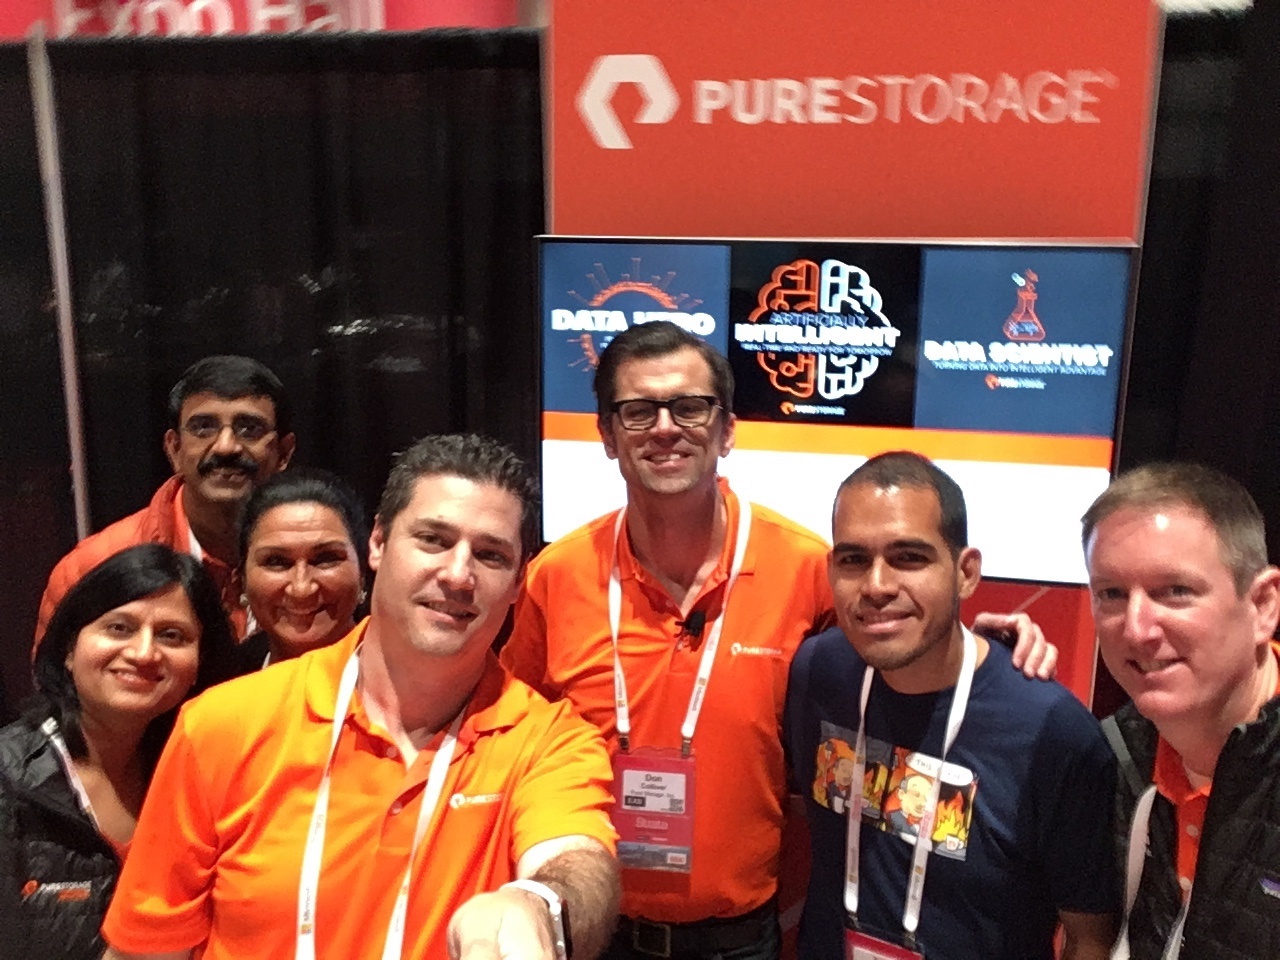 Professional trade show presenter Don Colliver with Pure Storage at Strata Data